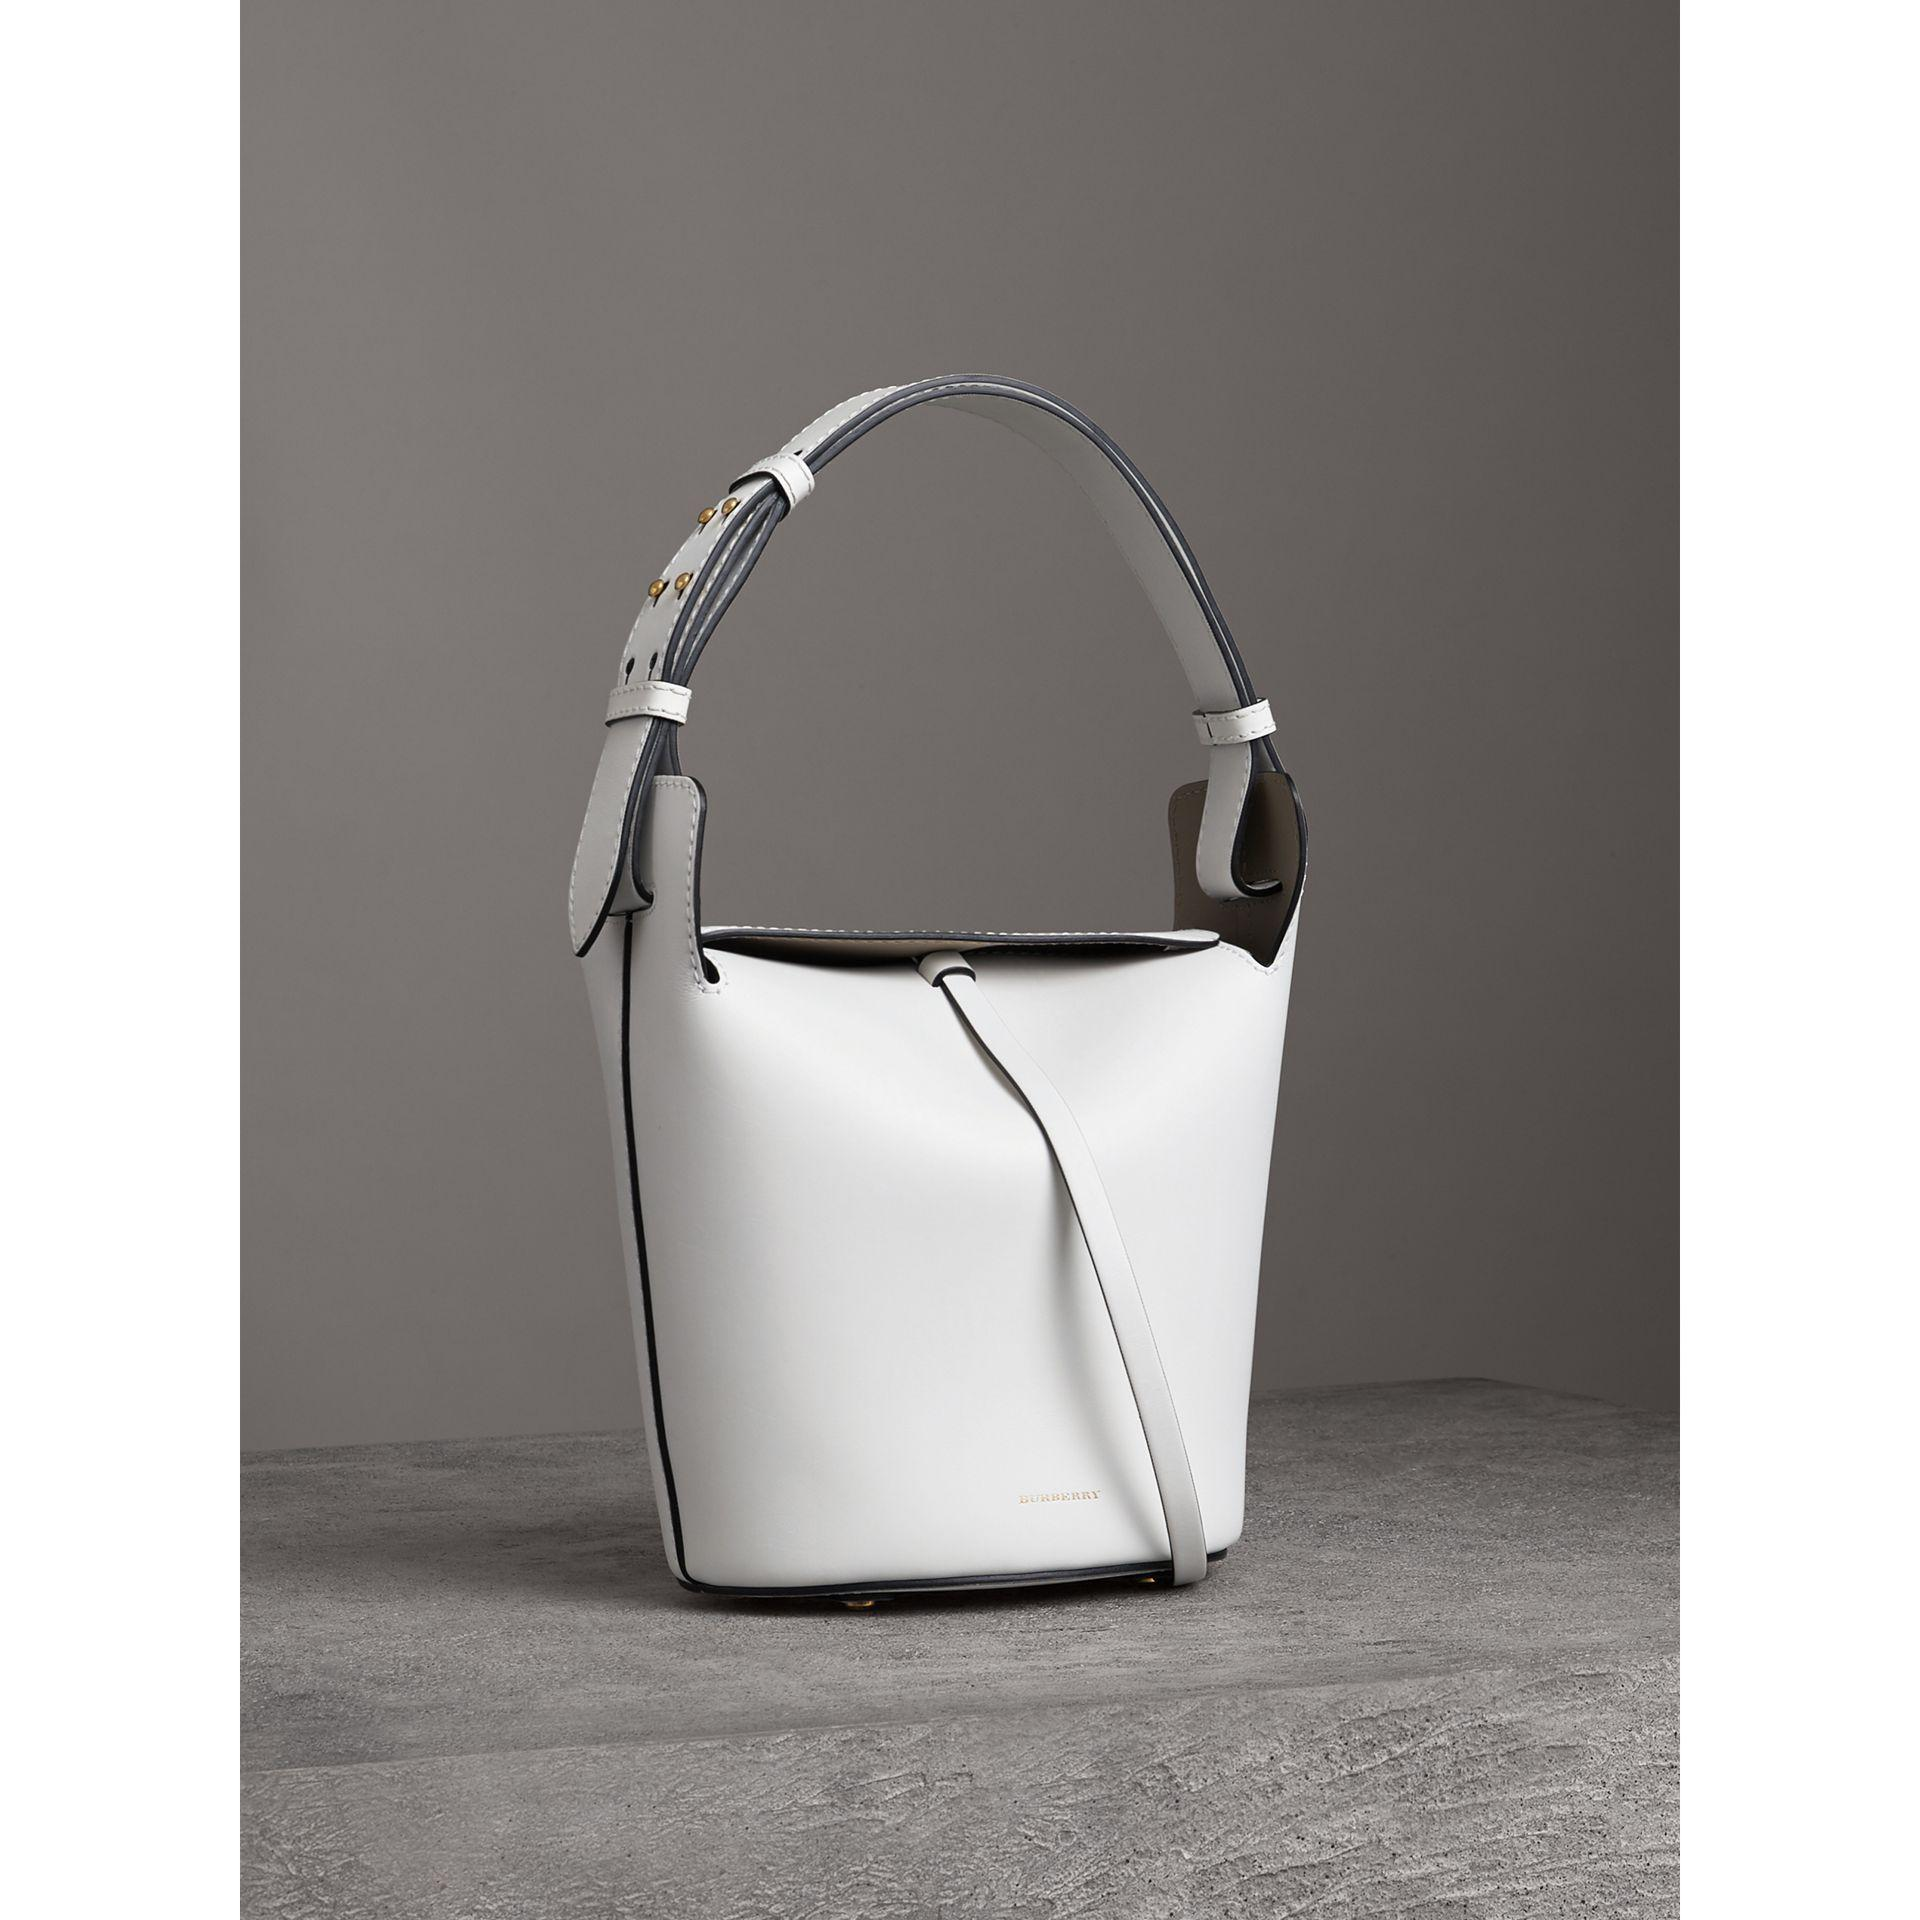 377edee17694 Burberry - White The Small Leather Bucket Bag - Lyst. View fullscreen